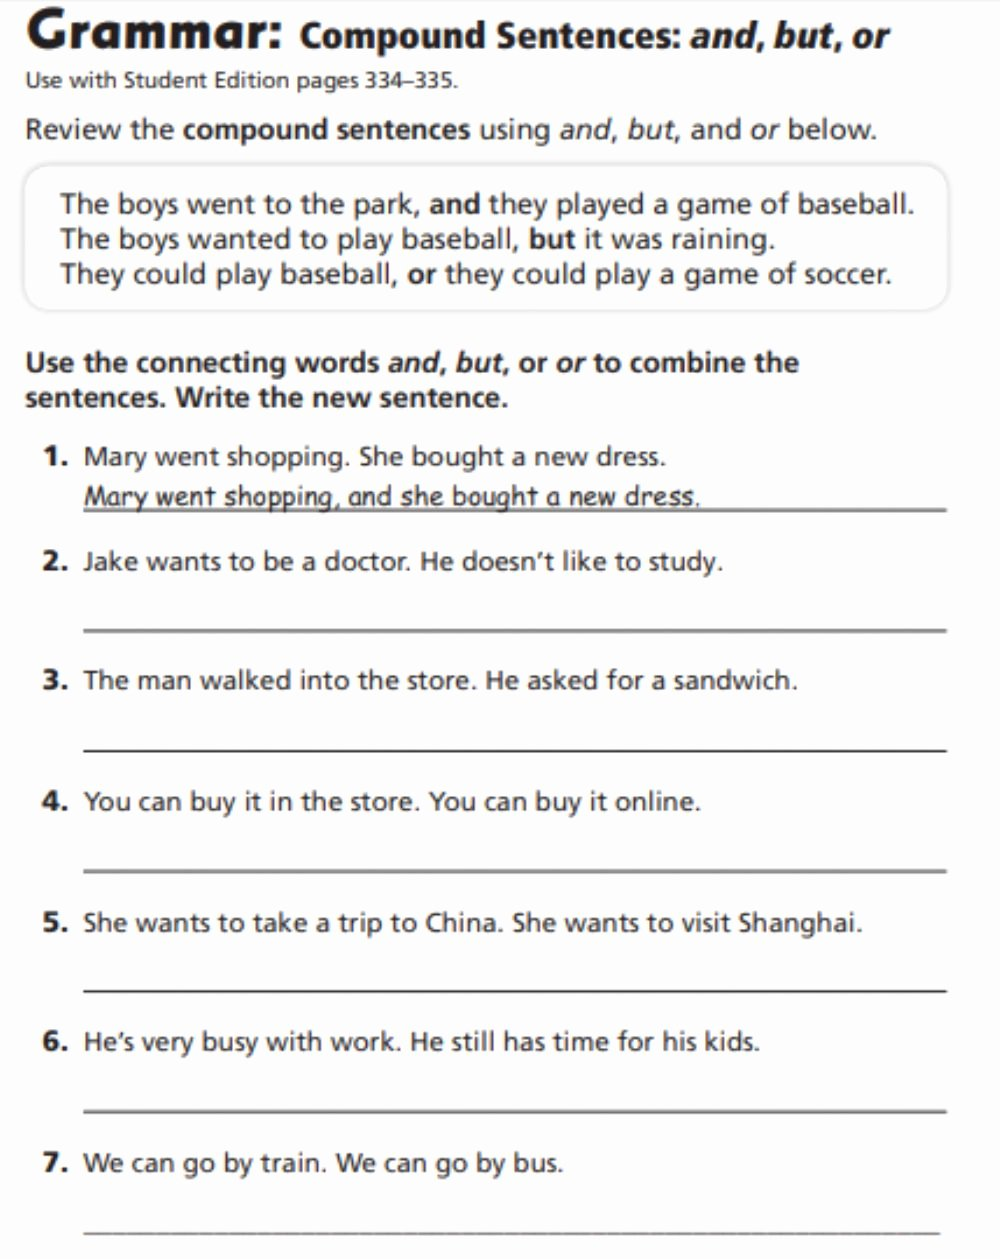 Compound Sentences Worksheet with Answers Kids Pound Sentences Interactive Worksheet